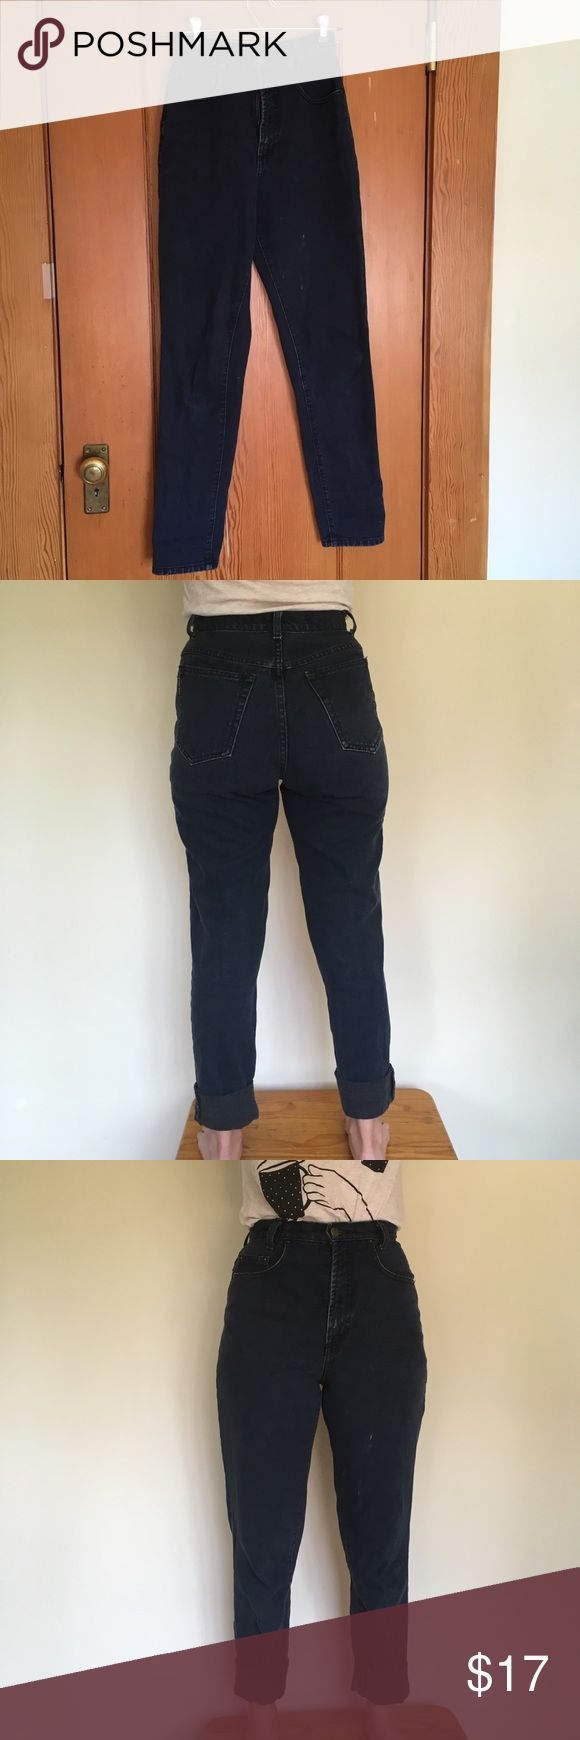 "High waisted over-dyed navy blue Karen Kane jeans Very soft, and very flattering in the booty and waist area. Model double cuffed to fit height.  27"" waist, 42"" waist to ankle, 31"" inseam. Model 5'3, 117 lbs and 28"" waist for reference. Two small white paint stains on left leg on upper thigh area. Karen Kane Jeans"